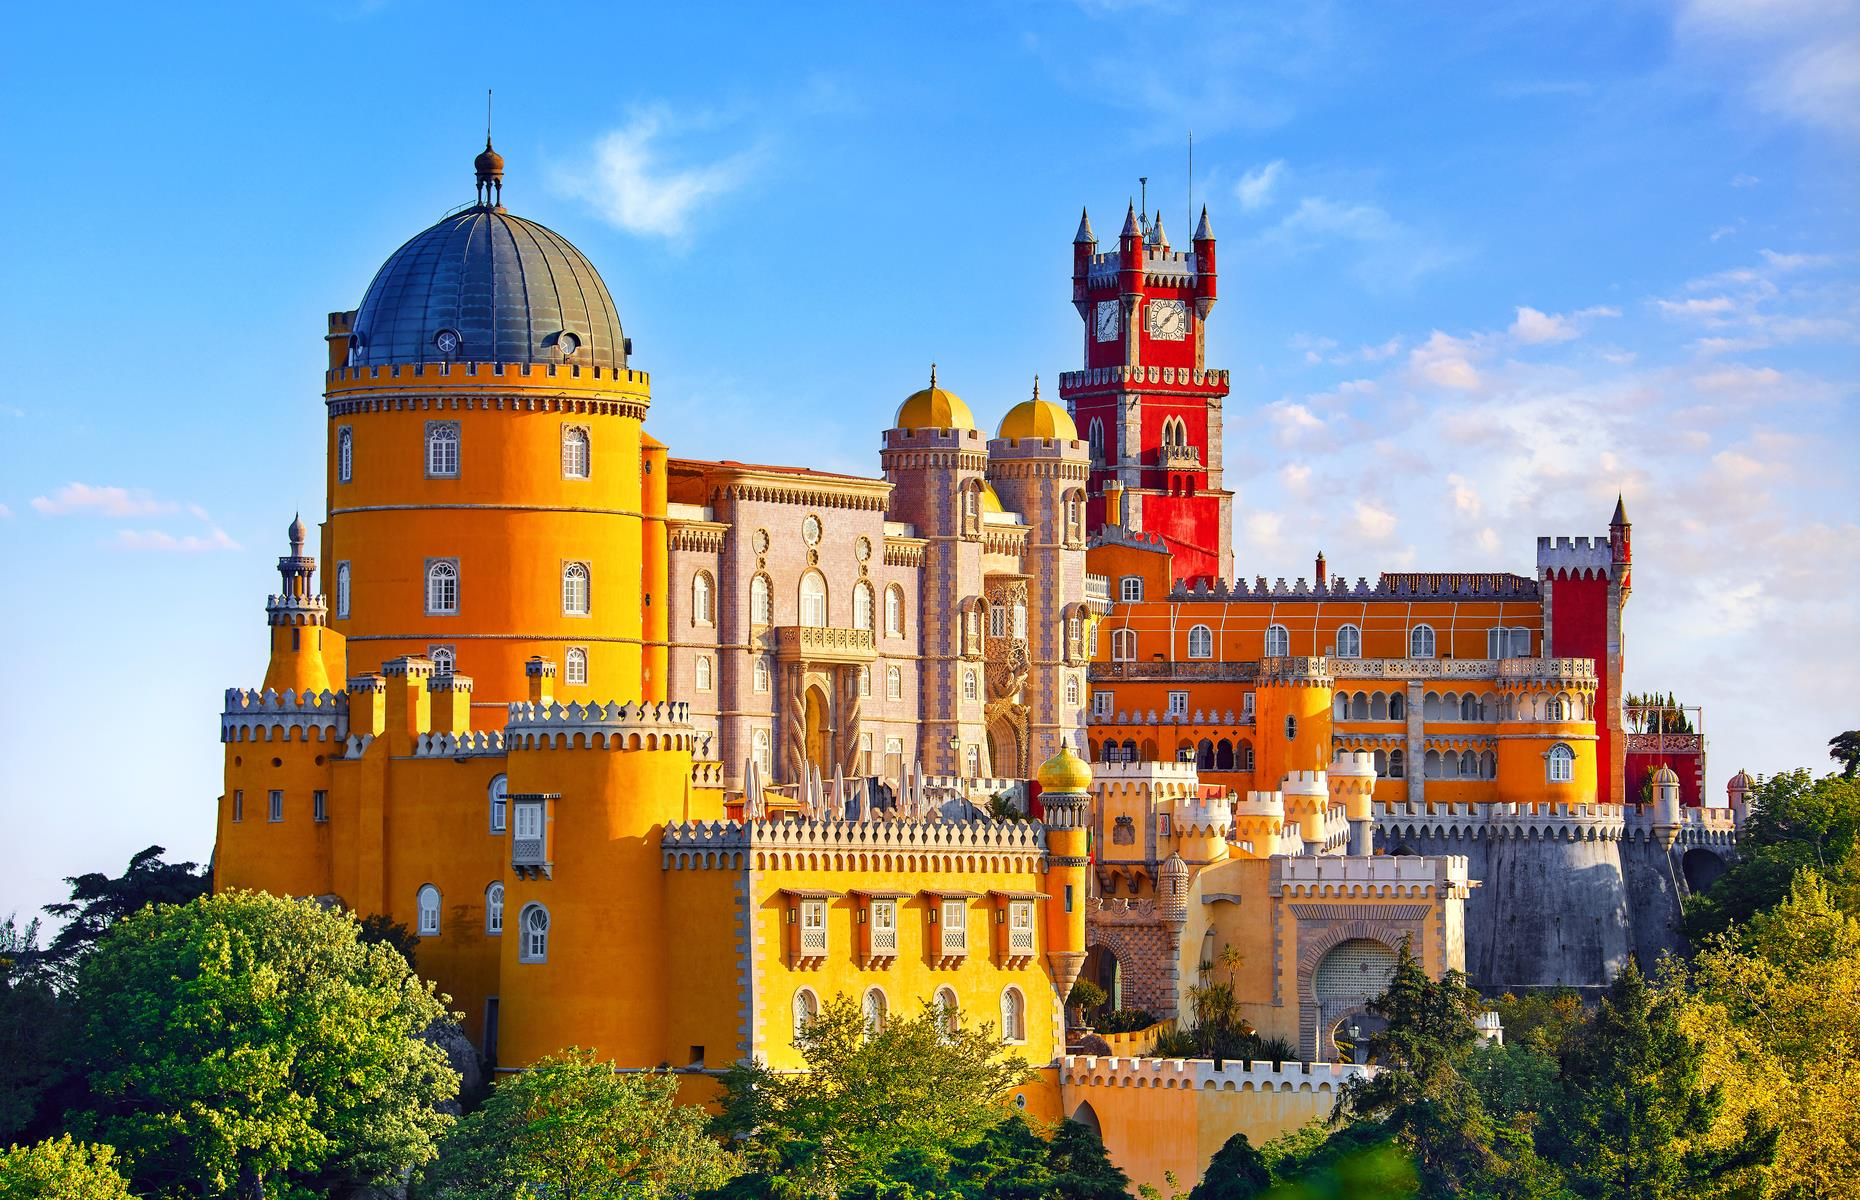 Slide 30 of 53: Palaces, as a rule, don't tend to be hard on the eye. But few are so heart-flutteringly pretty as Pena Palace, whose butter-yellow turrets and brick-red towers rise above the treetops in hilly Sintra, just outside Lisbon. The multicolored beauty, an example of 19th-century Romanticism,was commissioned by King Ferdinand II and completed in 1854, and has been home to Portuguese royals through the years.